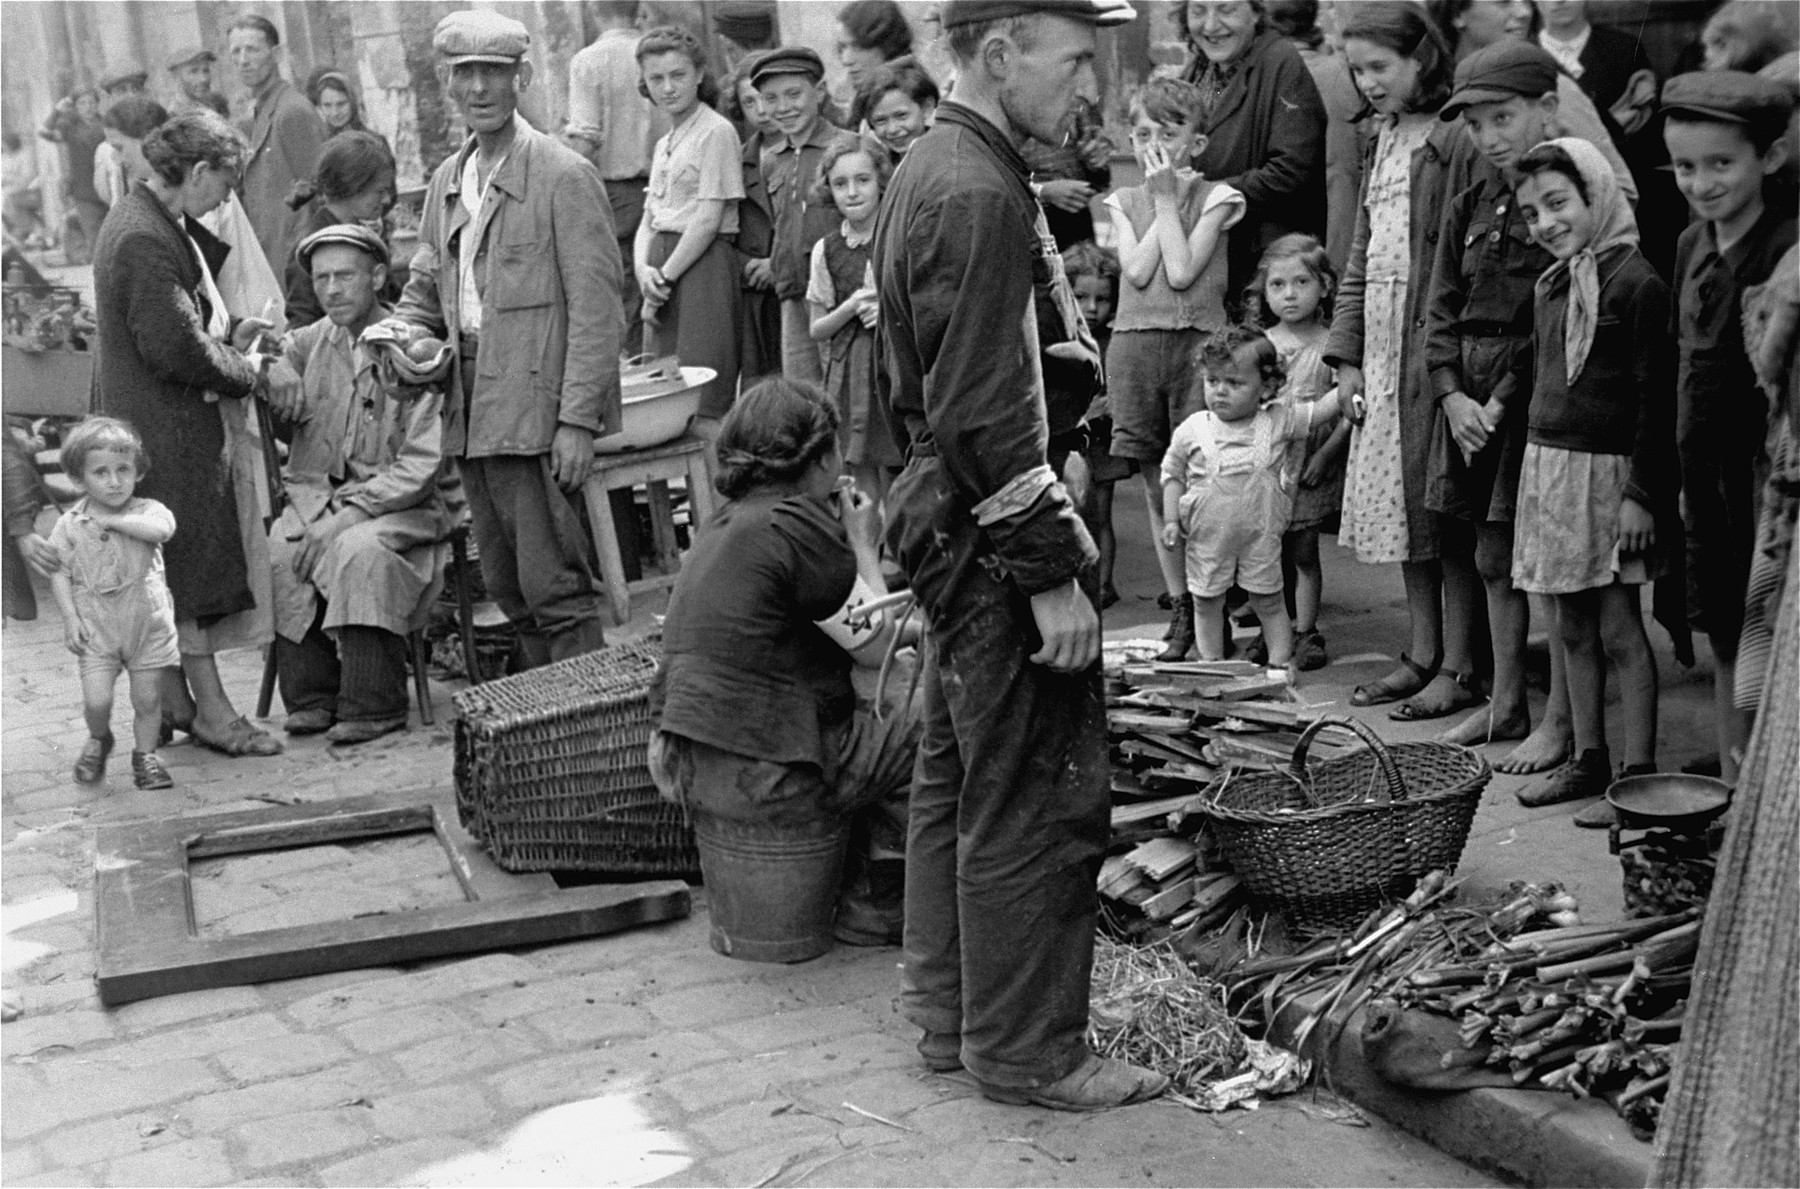 Jews gather around a couple selling kindling on the street in the Warsaw ghetto.